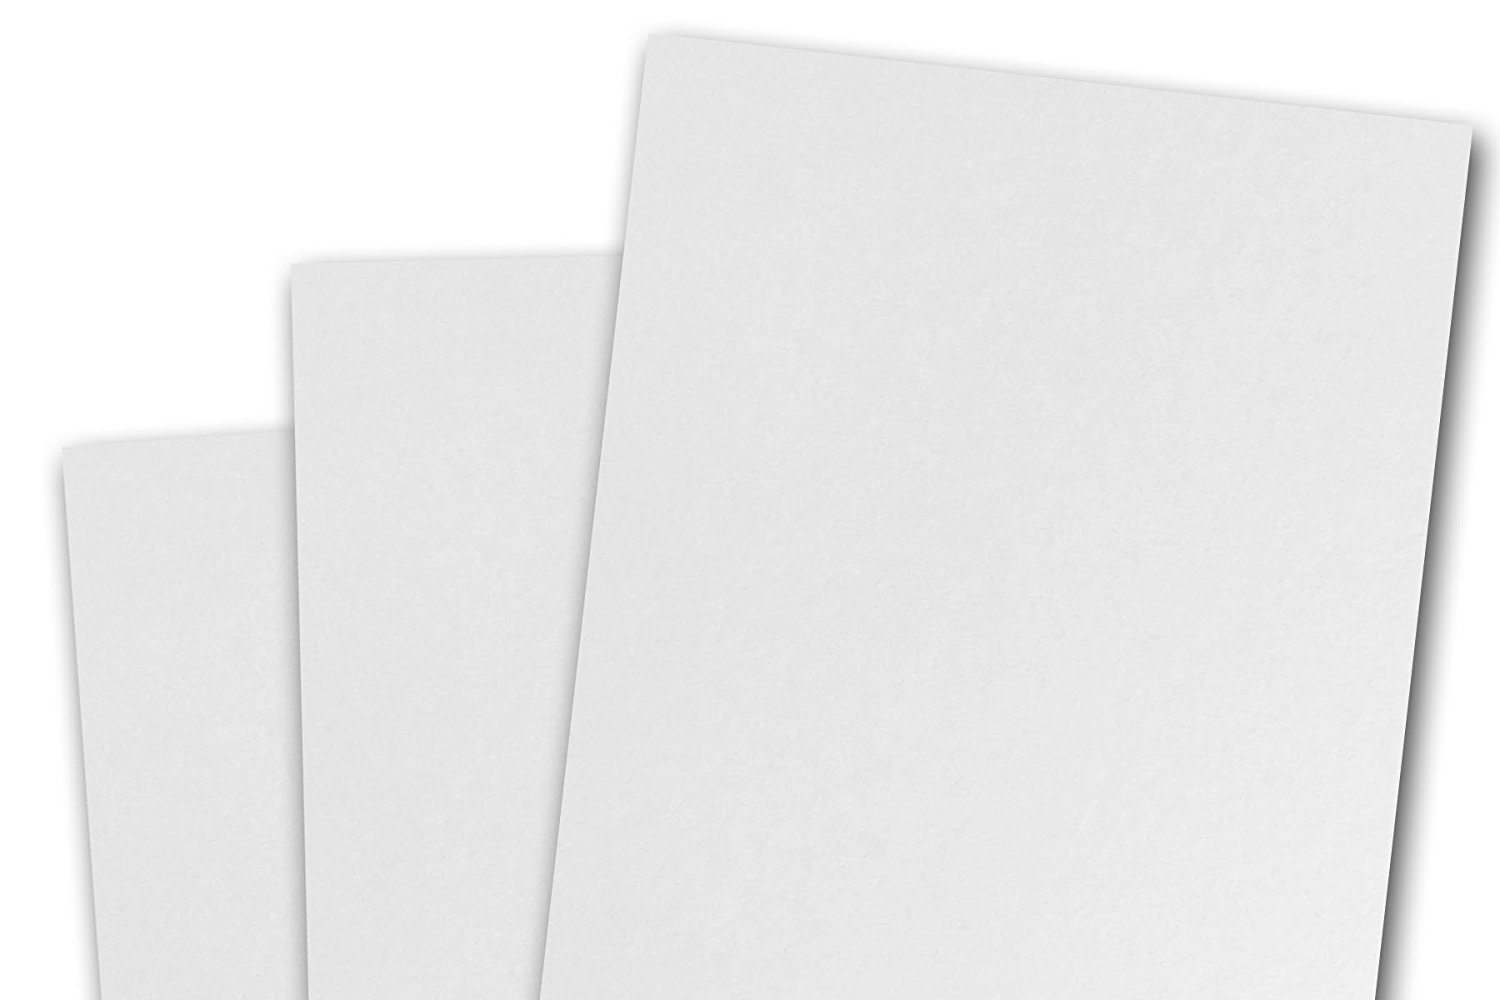 Blank Basis White 5x7 Flat Card Invitations 250 Pack Walmartcom